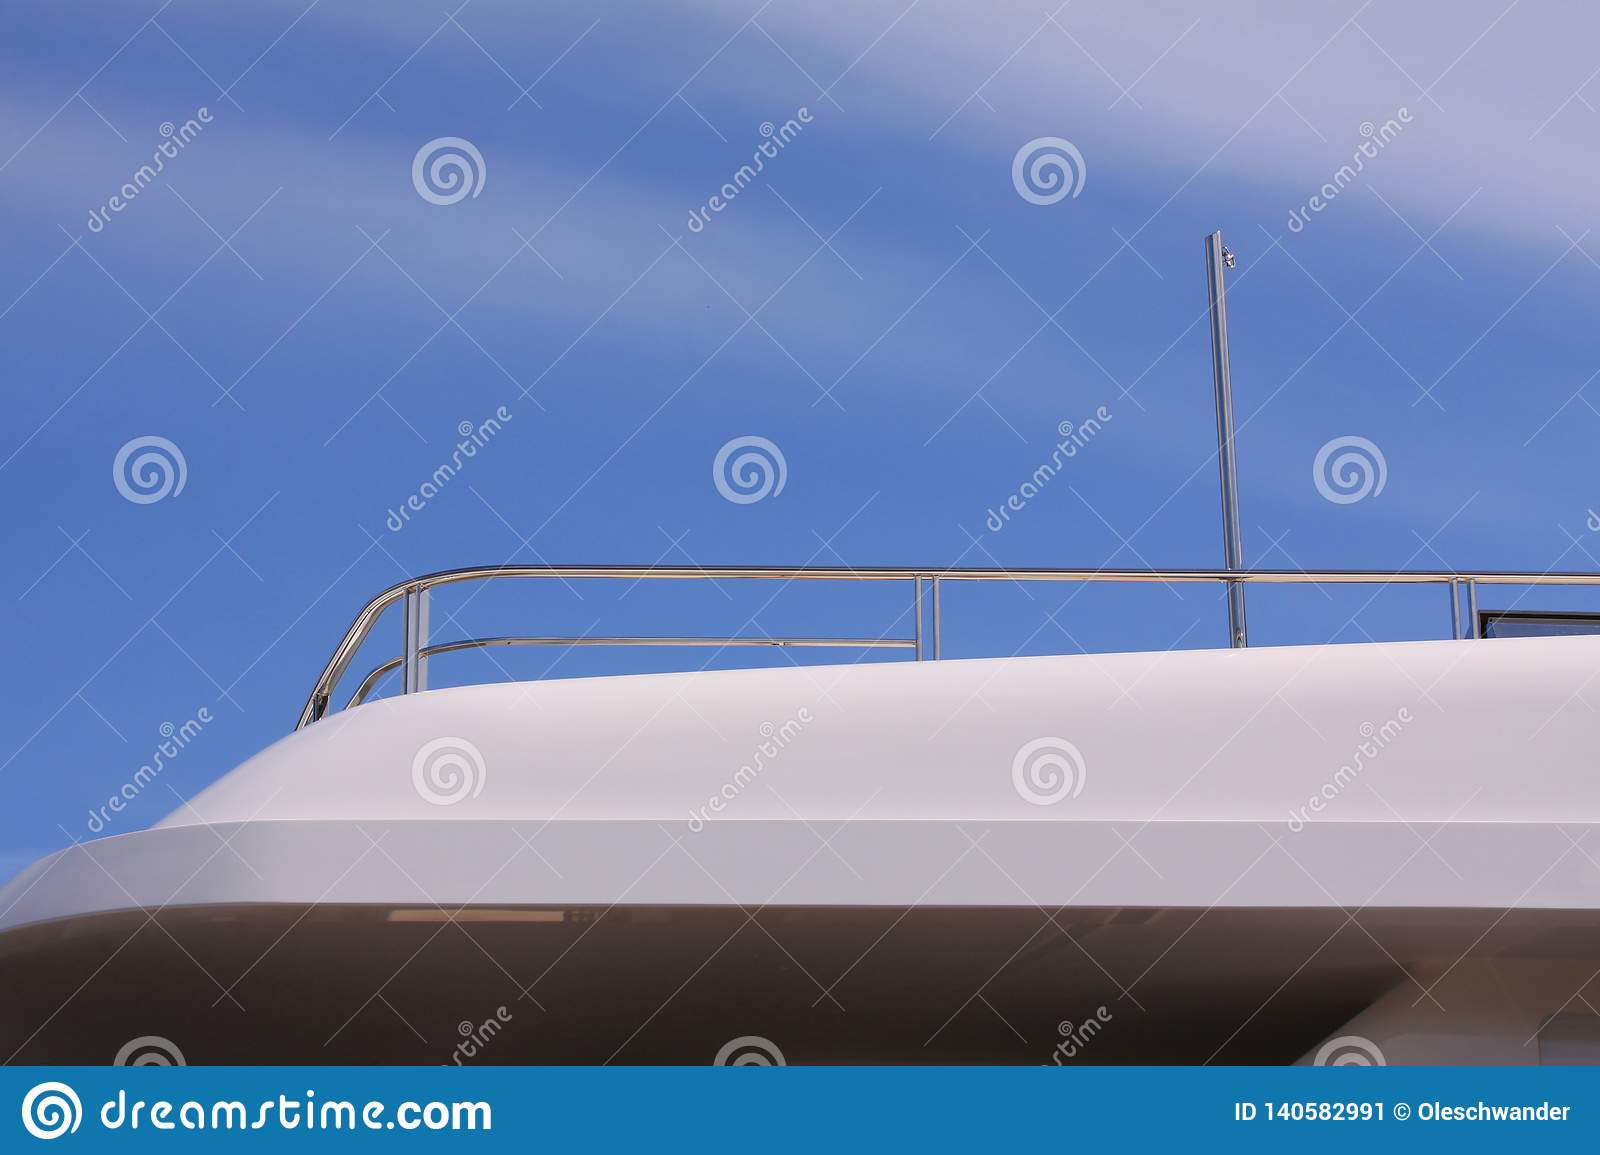 Modern Luxury Yacht Details With Stainless Steel Yacht